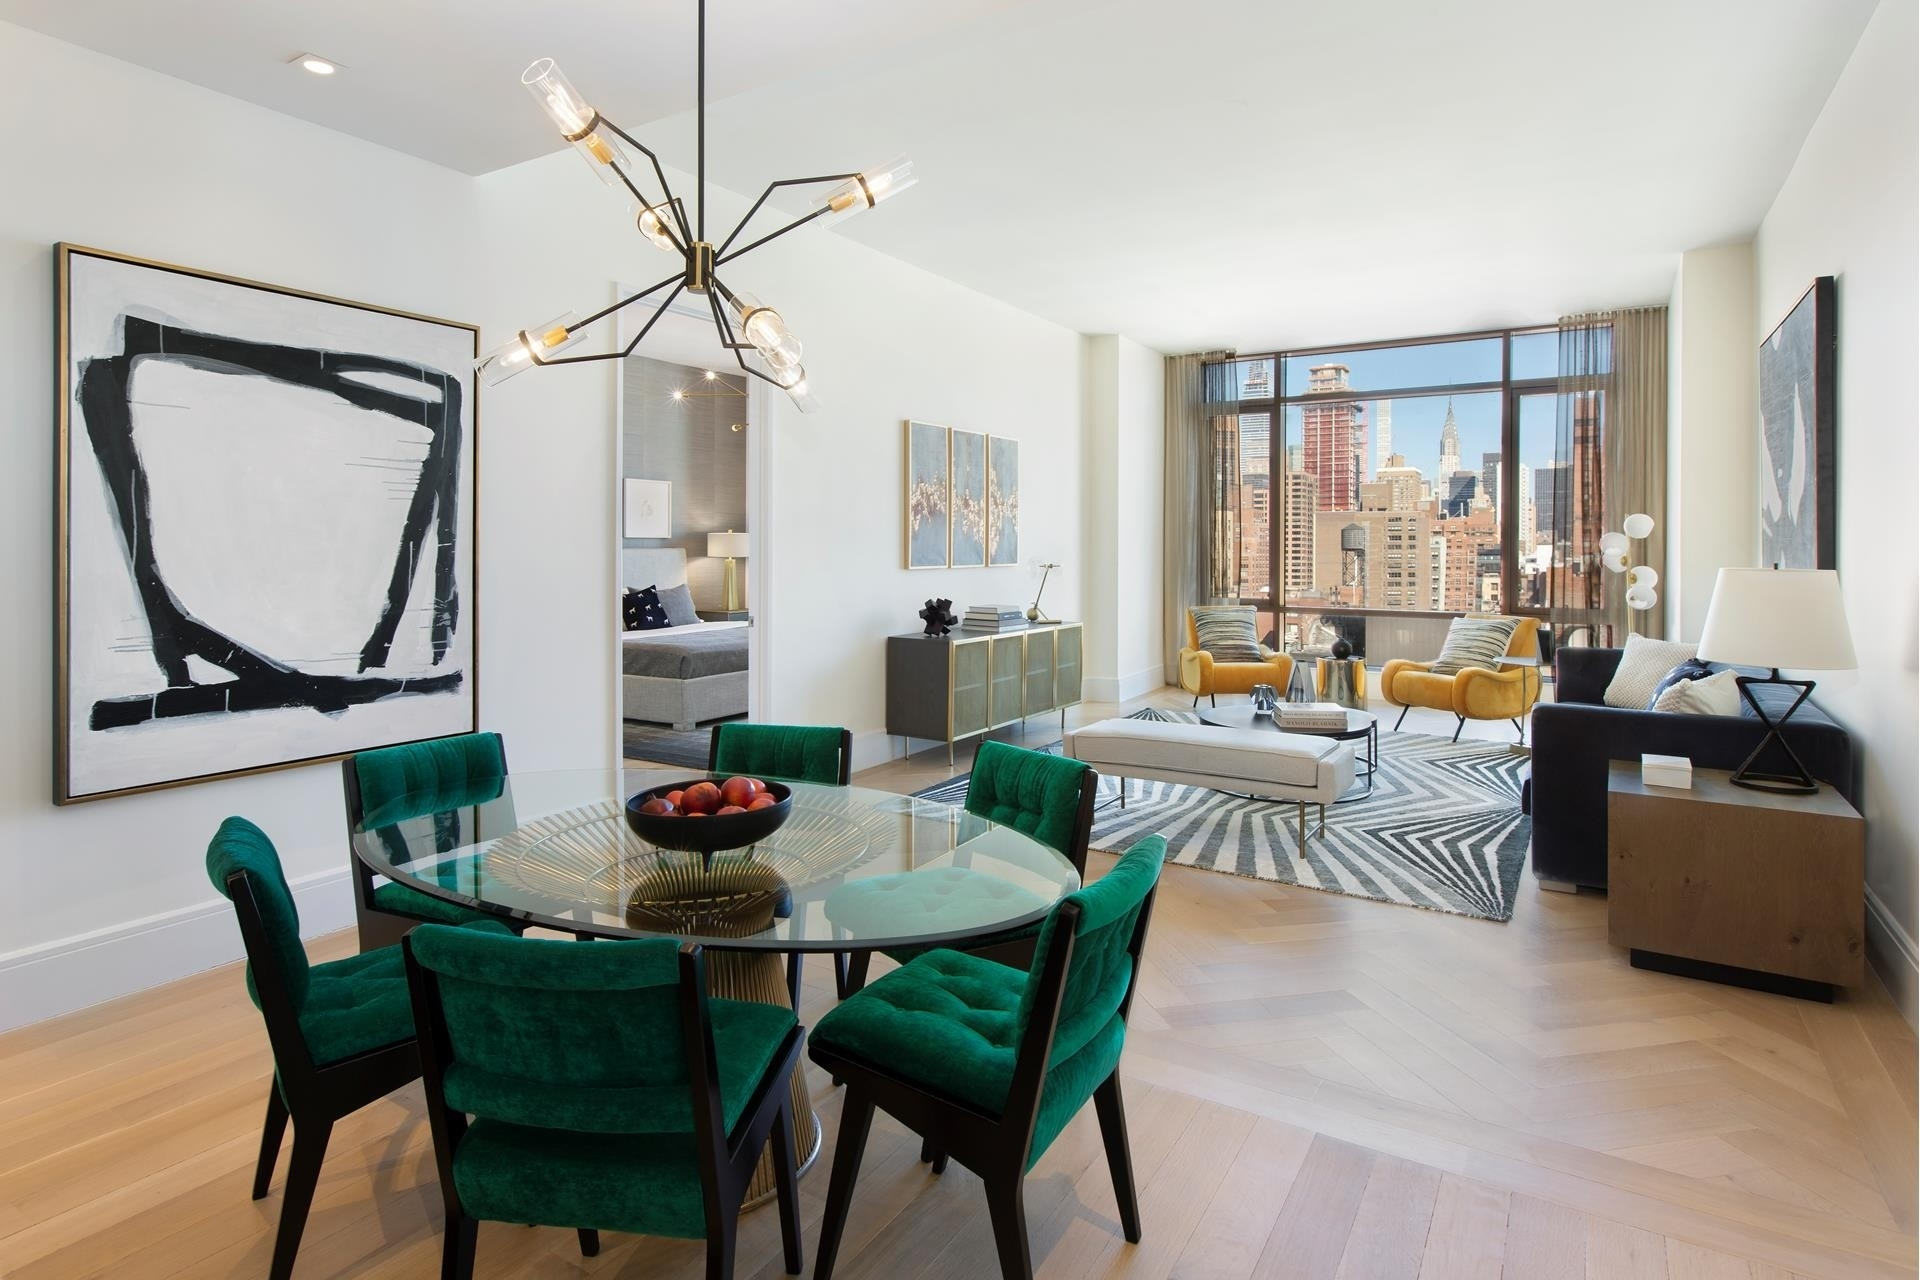 Condominium for Sale at Gramercy Square, 215 East 19th St, 9D Gramercy Park, New York, NY 10003